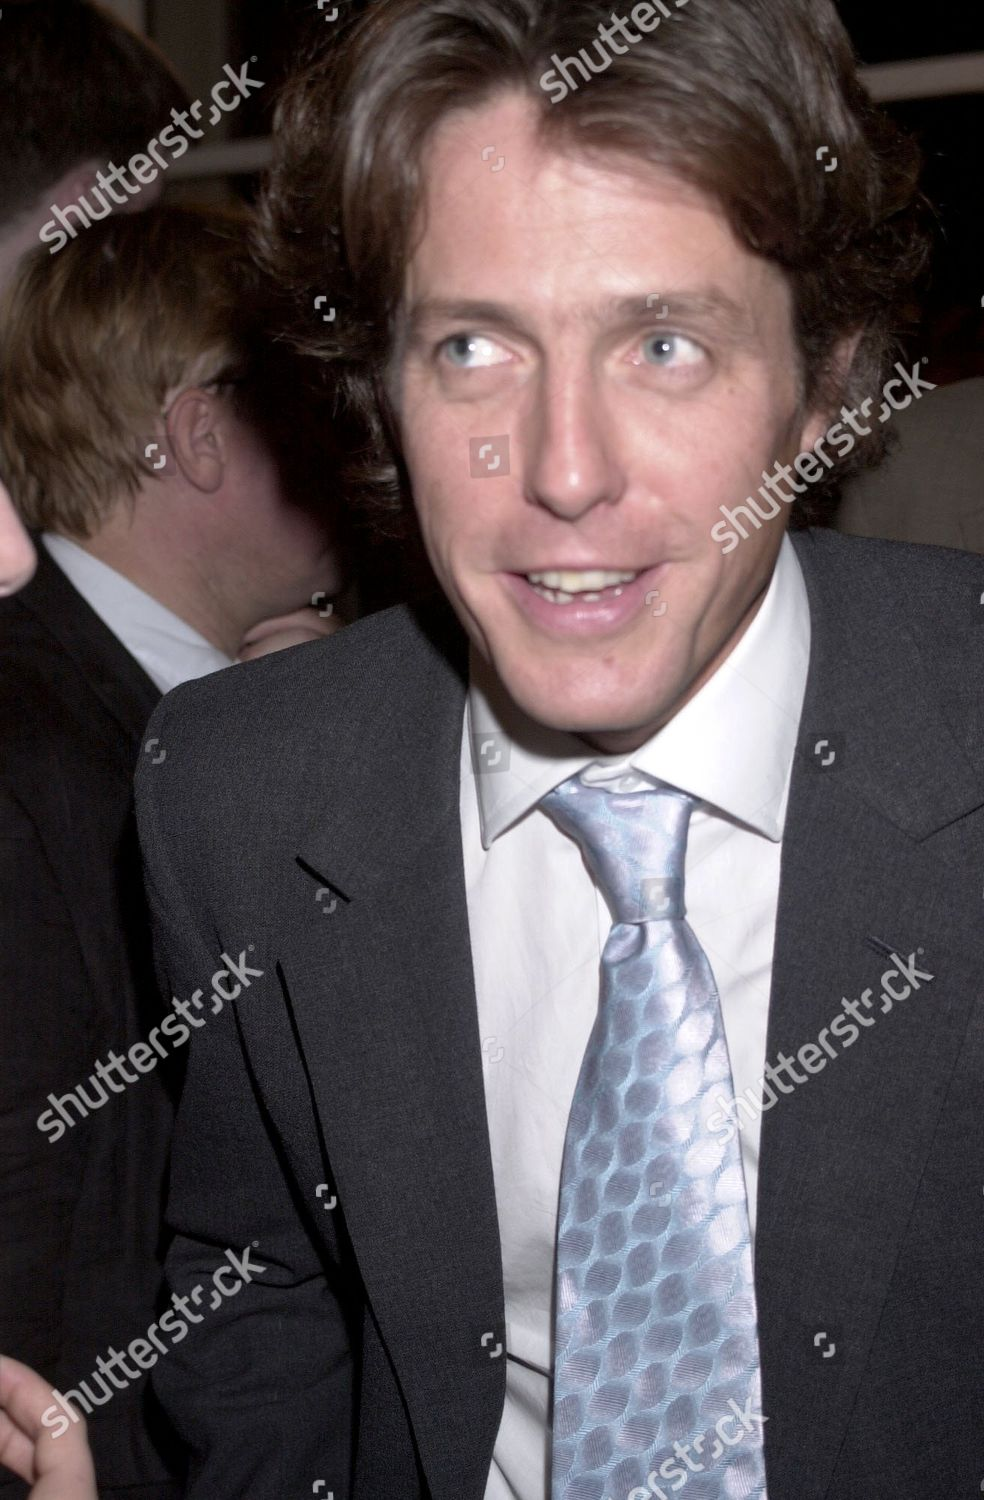 Hugh Grant Editorial Stock Photo - Stock Image | Shutterstock